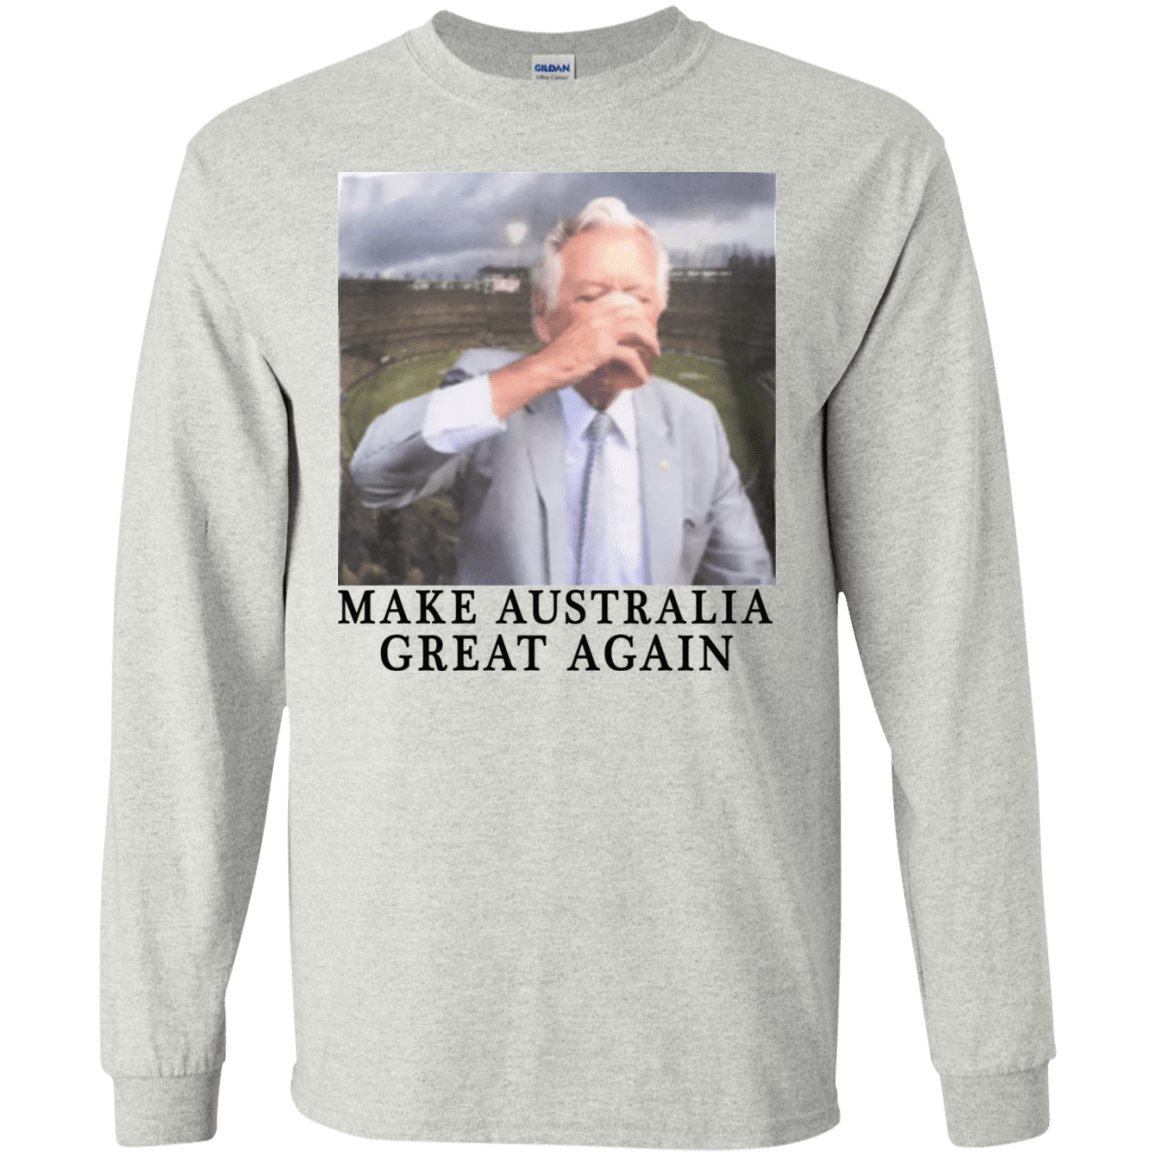 Make Australia Great Again 30-2112-72984813-10754 - Tee Ript